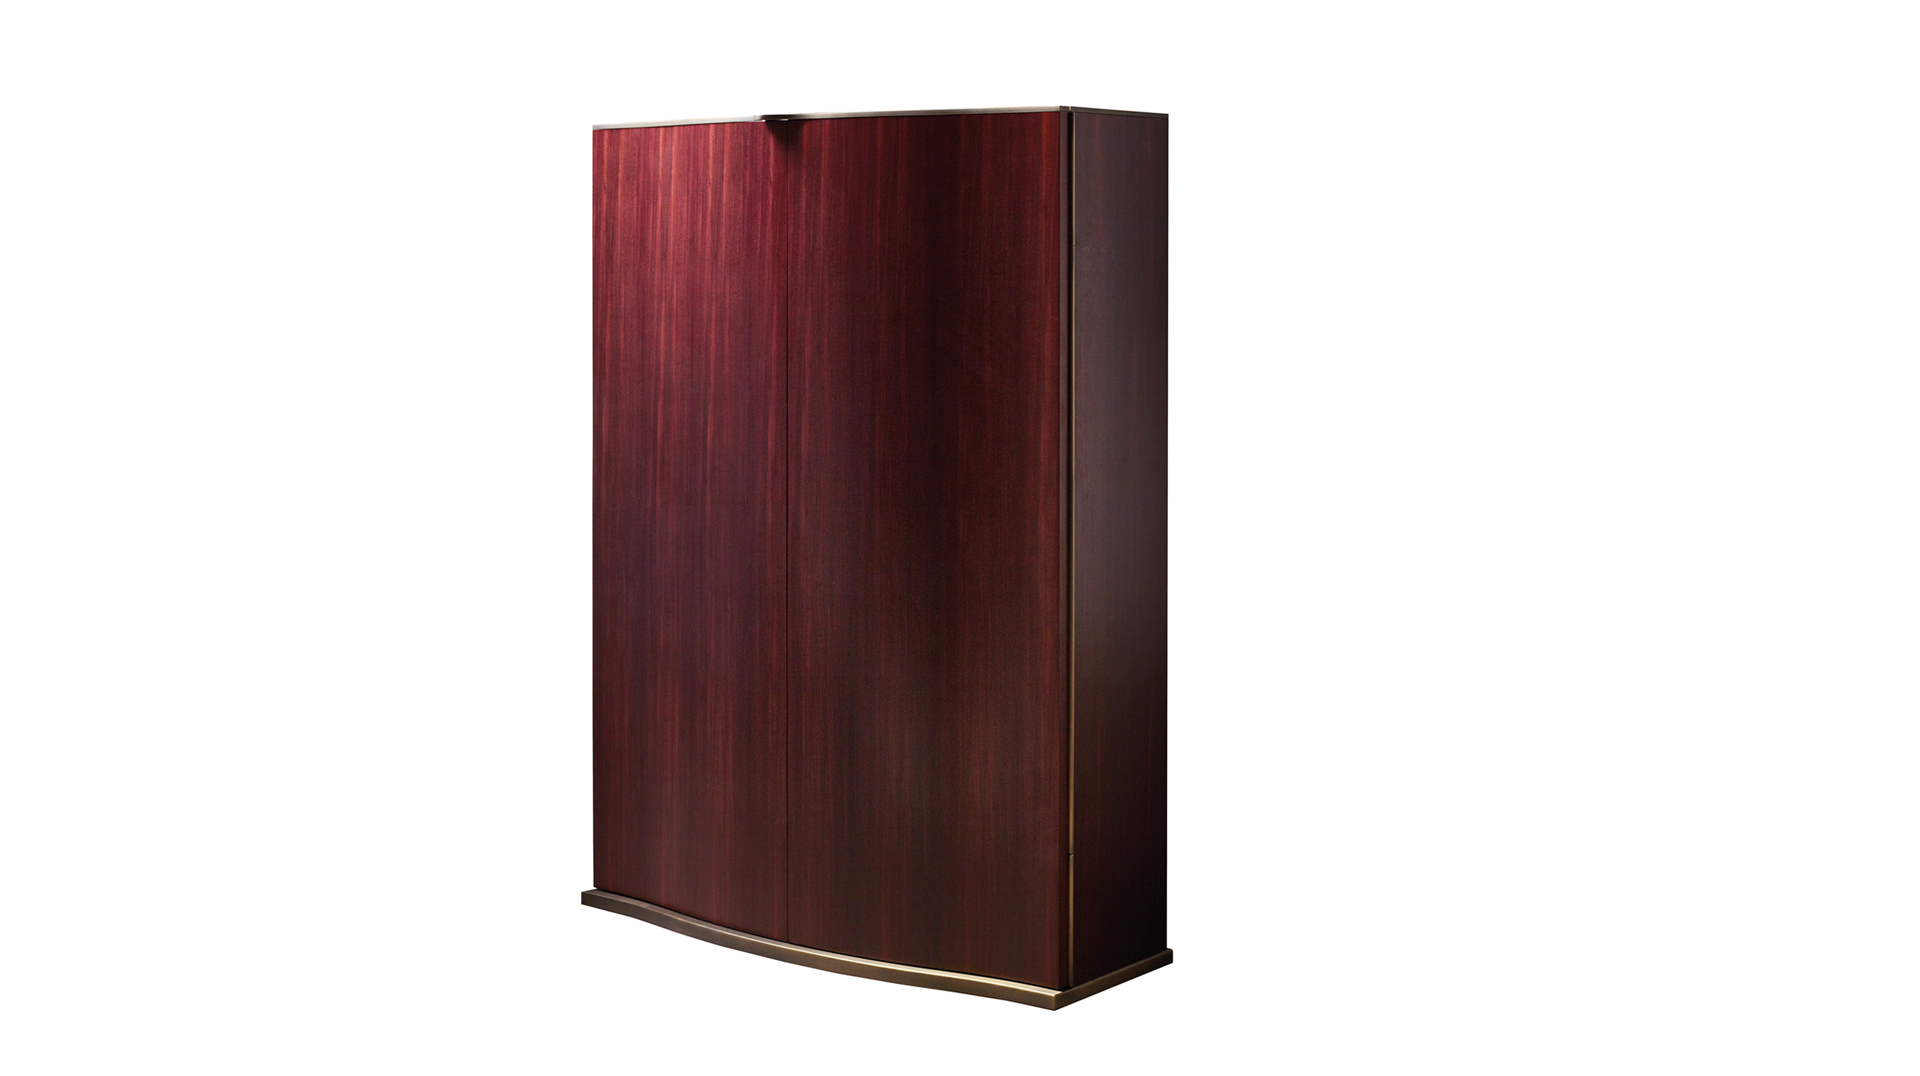 Alchemico Lui e Lei are two wooden cabinets with bronze details and several internal accessories, from Promemoria's collection Amaranthine Tales | Promemoria